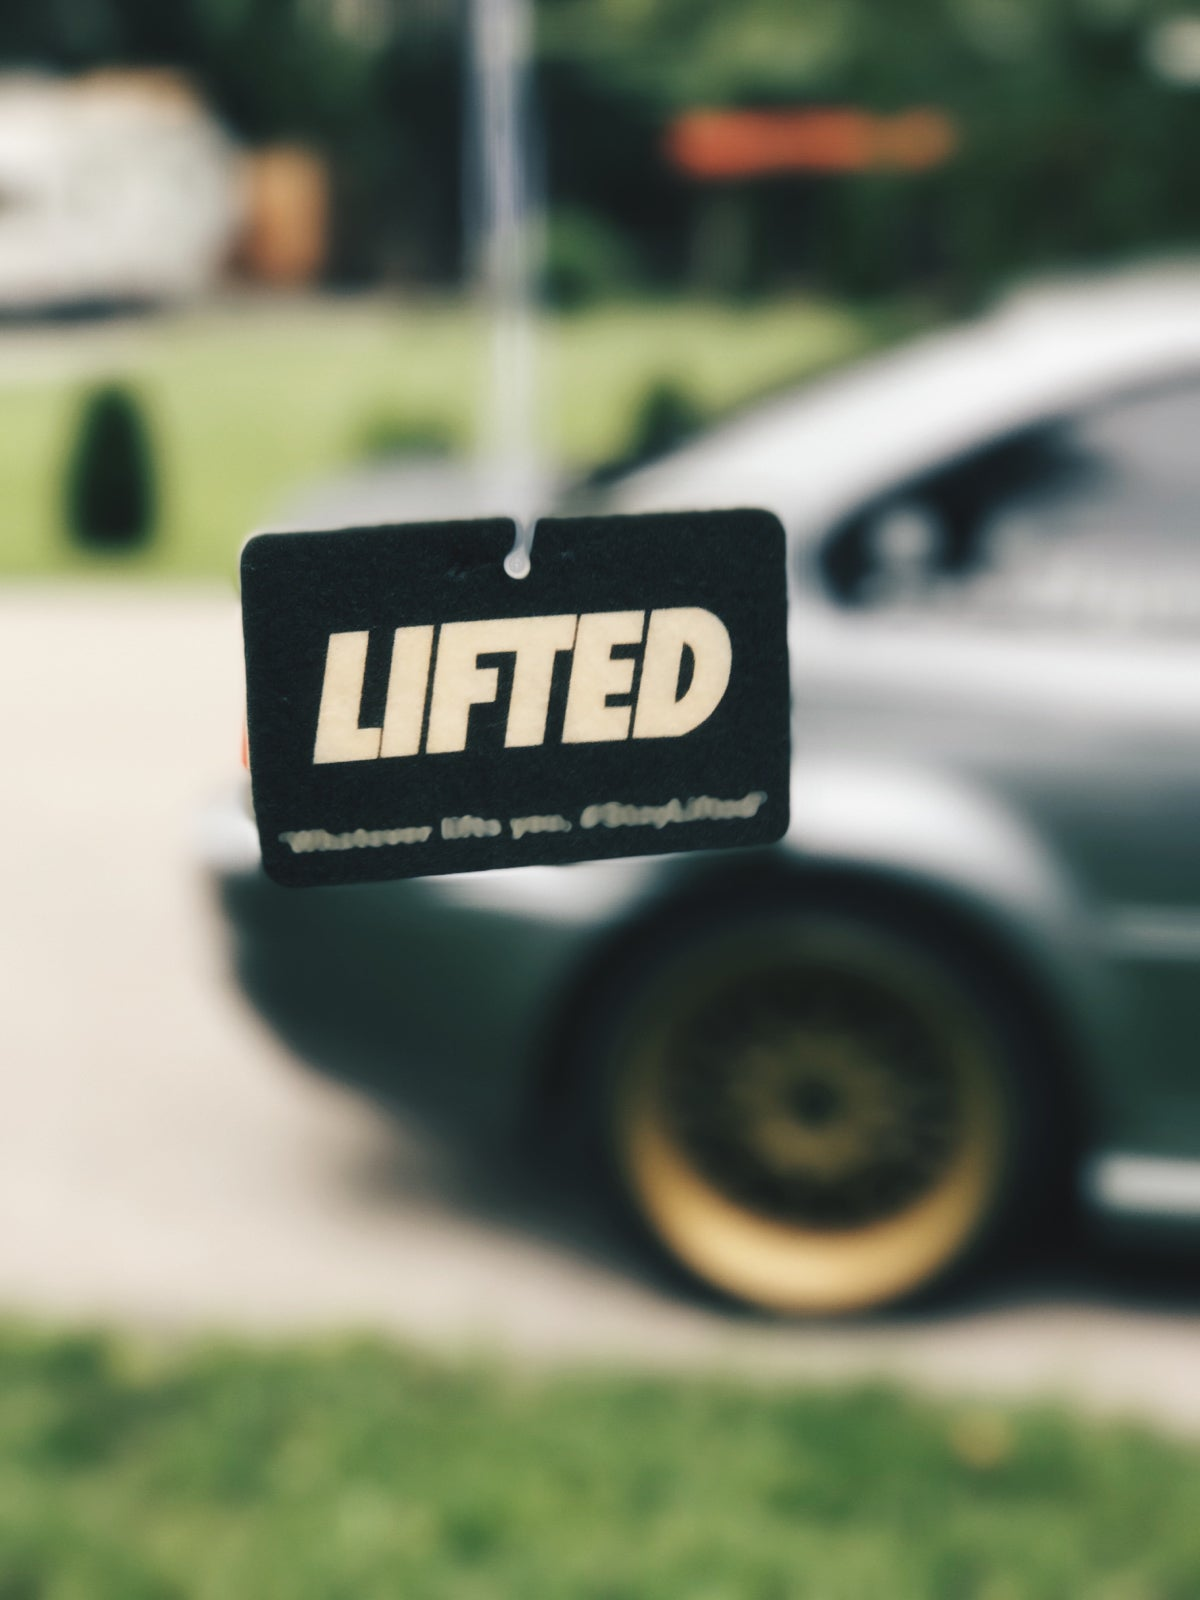 Image of Lifted Car Air Fresheners